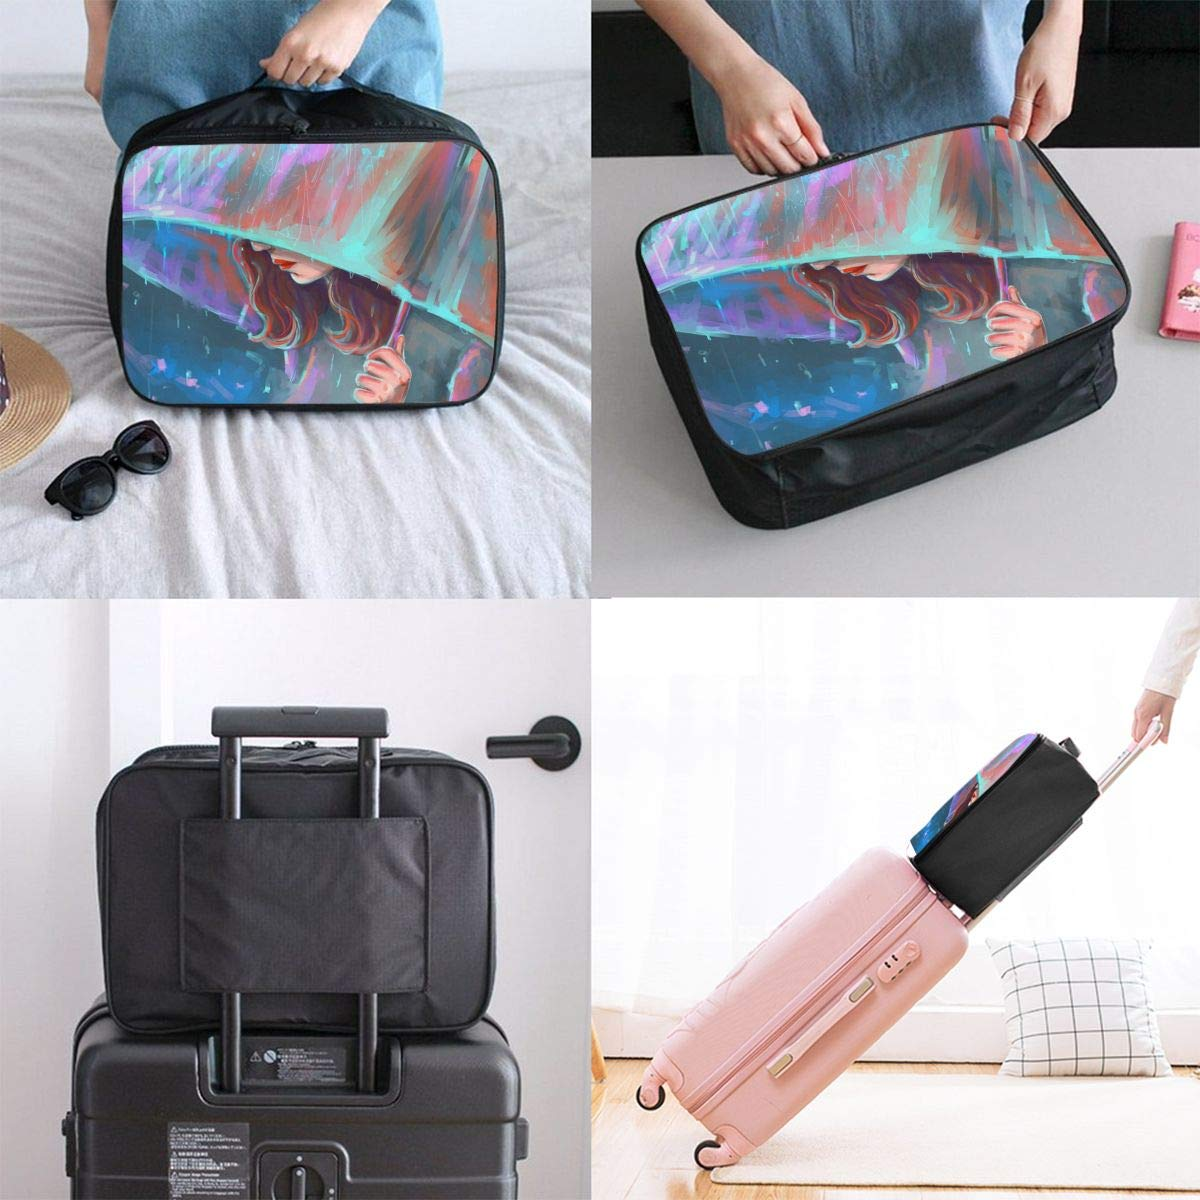 Travel Luggage Duffle Bag Lightweight Portable Handbag Umbrella Girl Pattern Large Capacity Waterproof Foldable Storage Tote